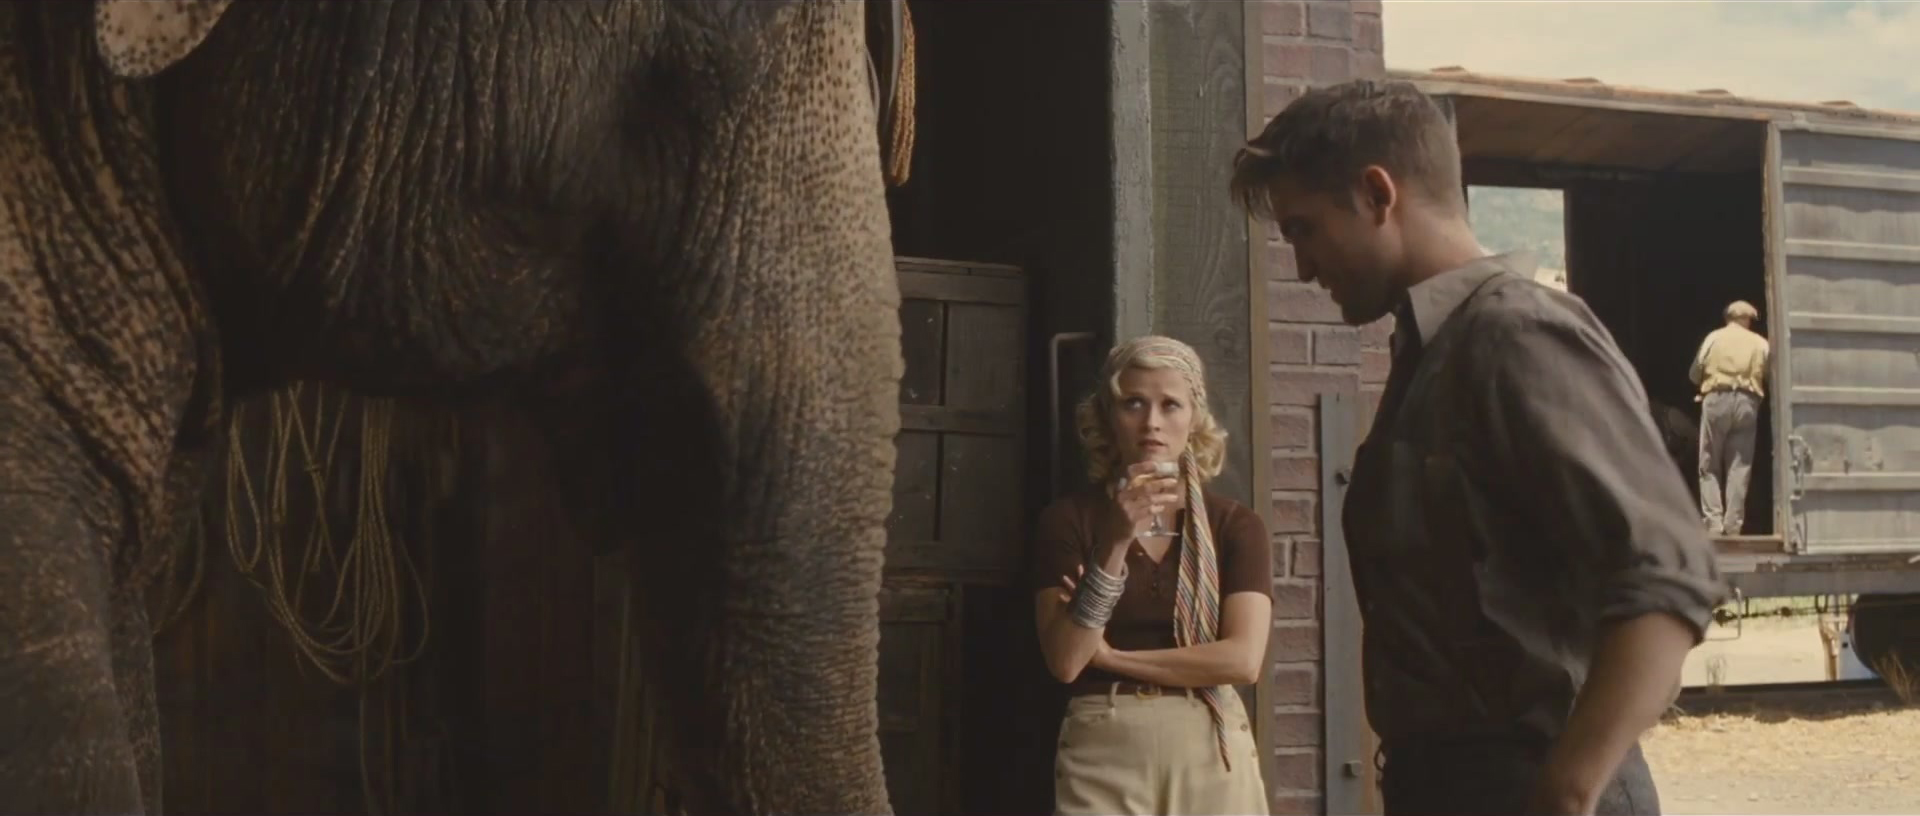 Воды слонам! (2011) - Water for Elephants